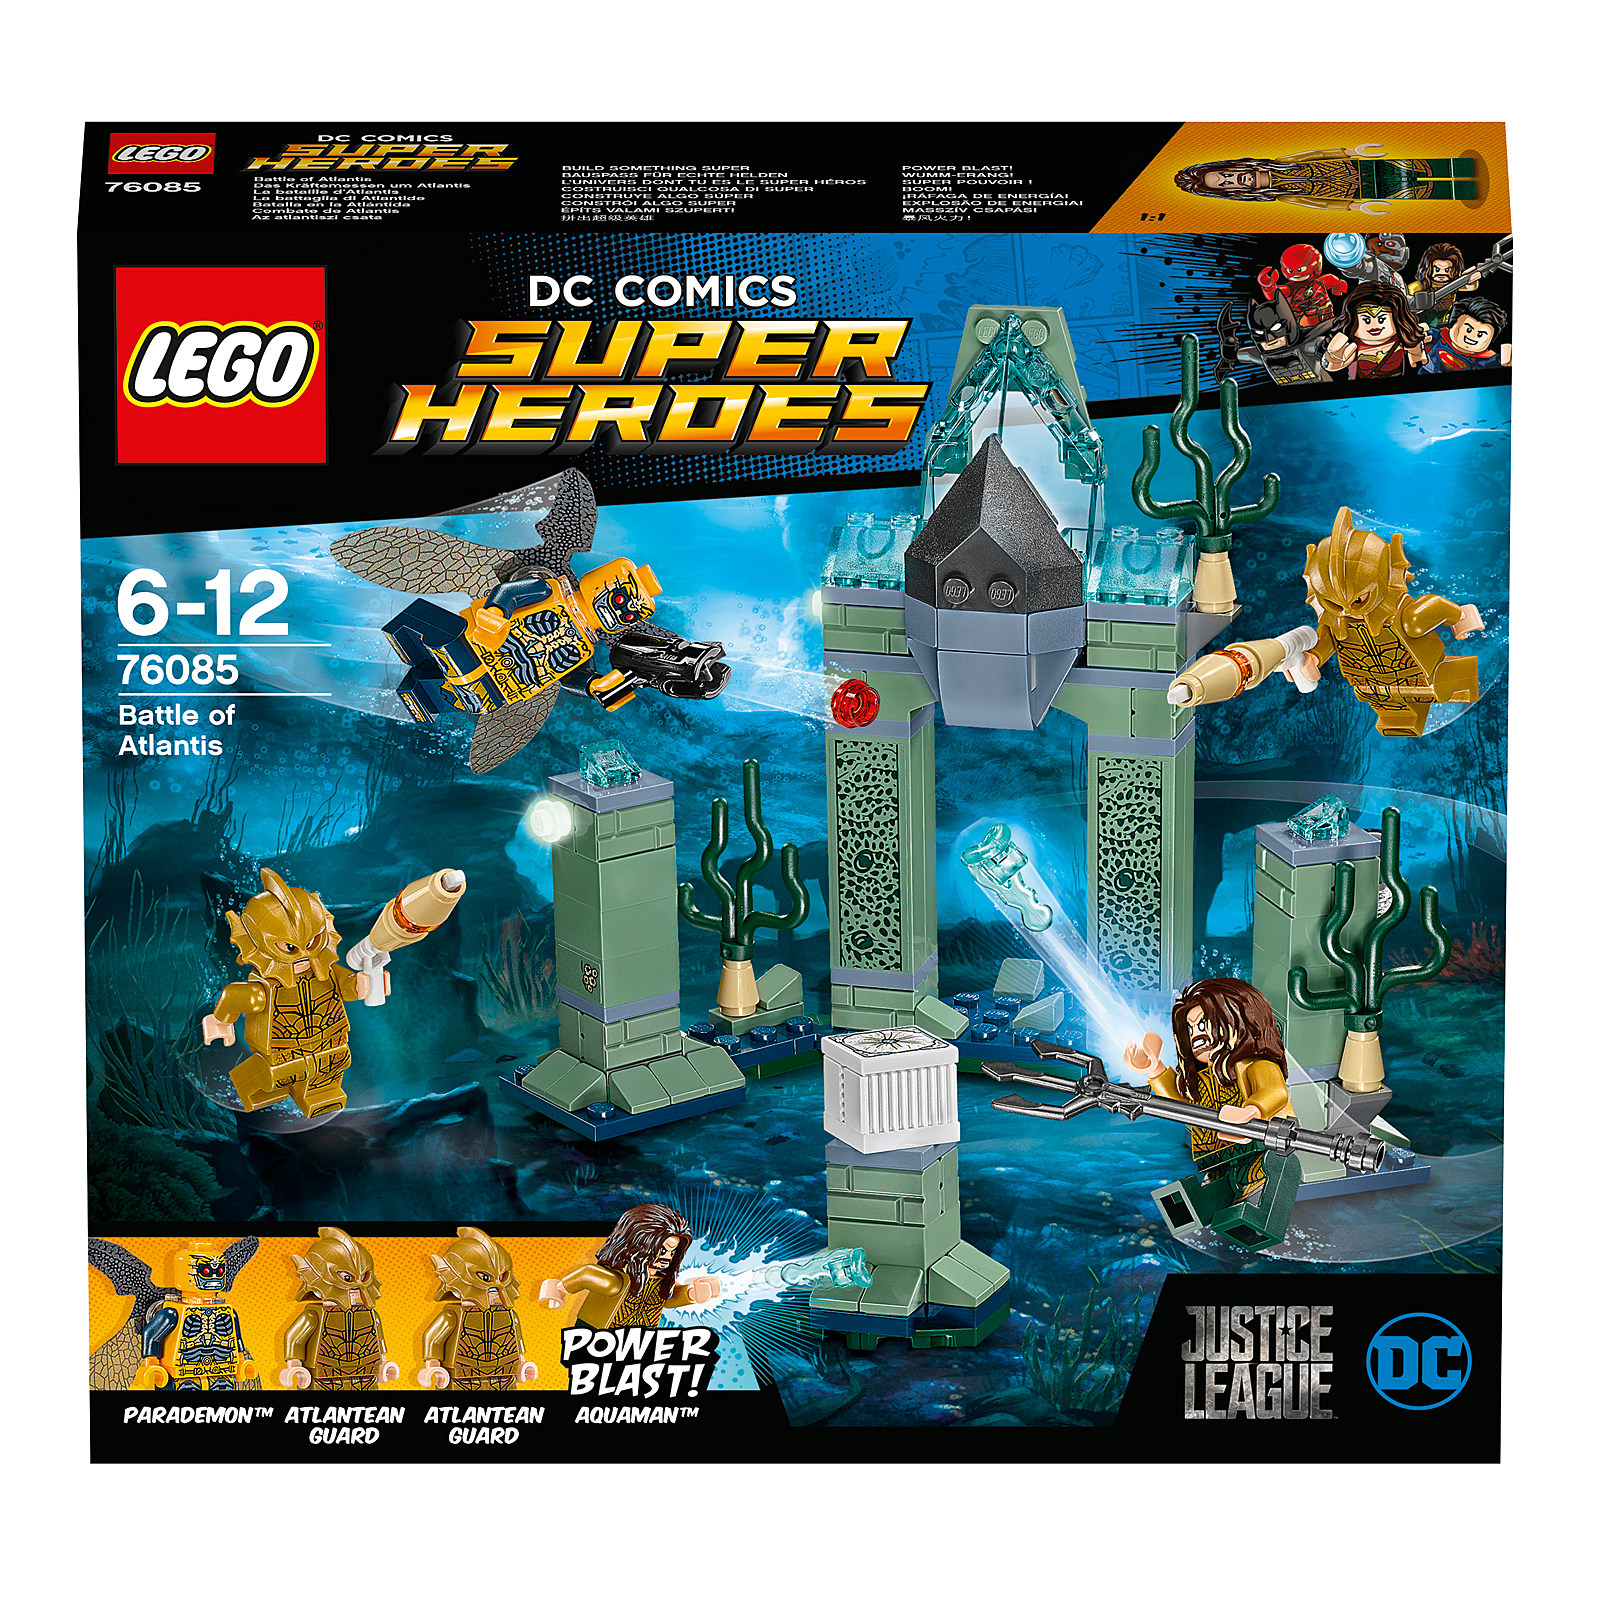 With Sets 'justice Aquaman And Debuts League' Flash Lego New mPO8y0wvNn